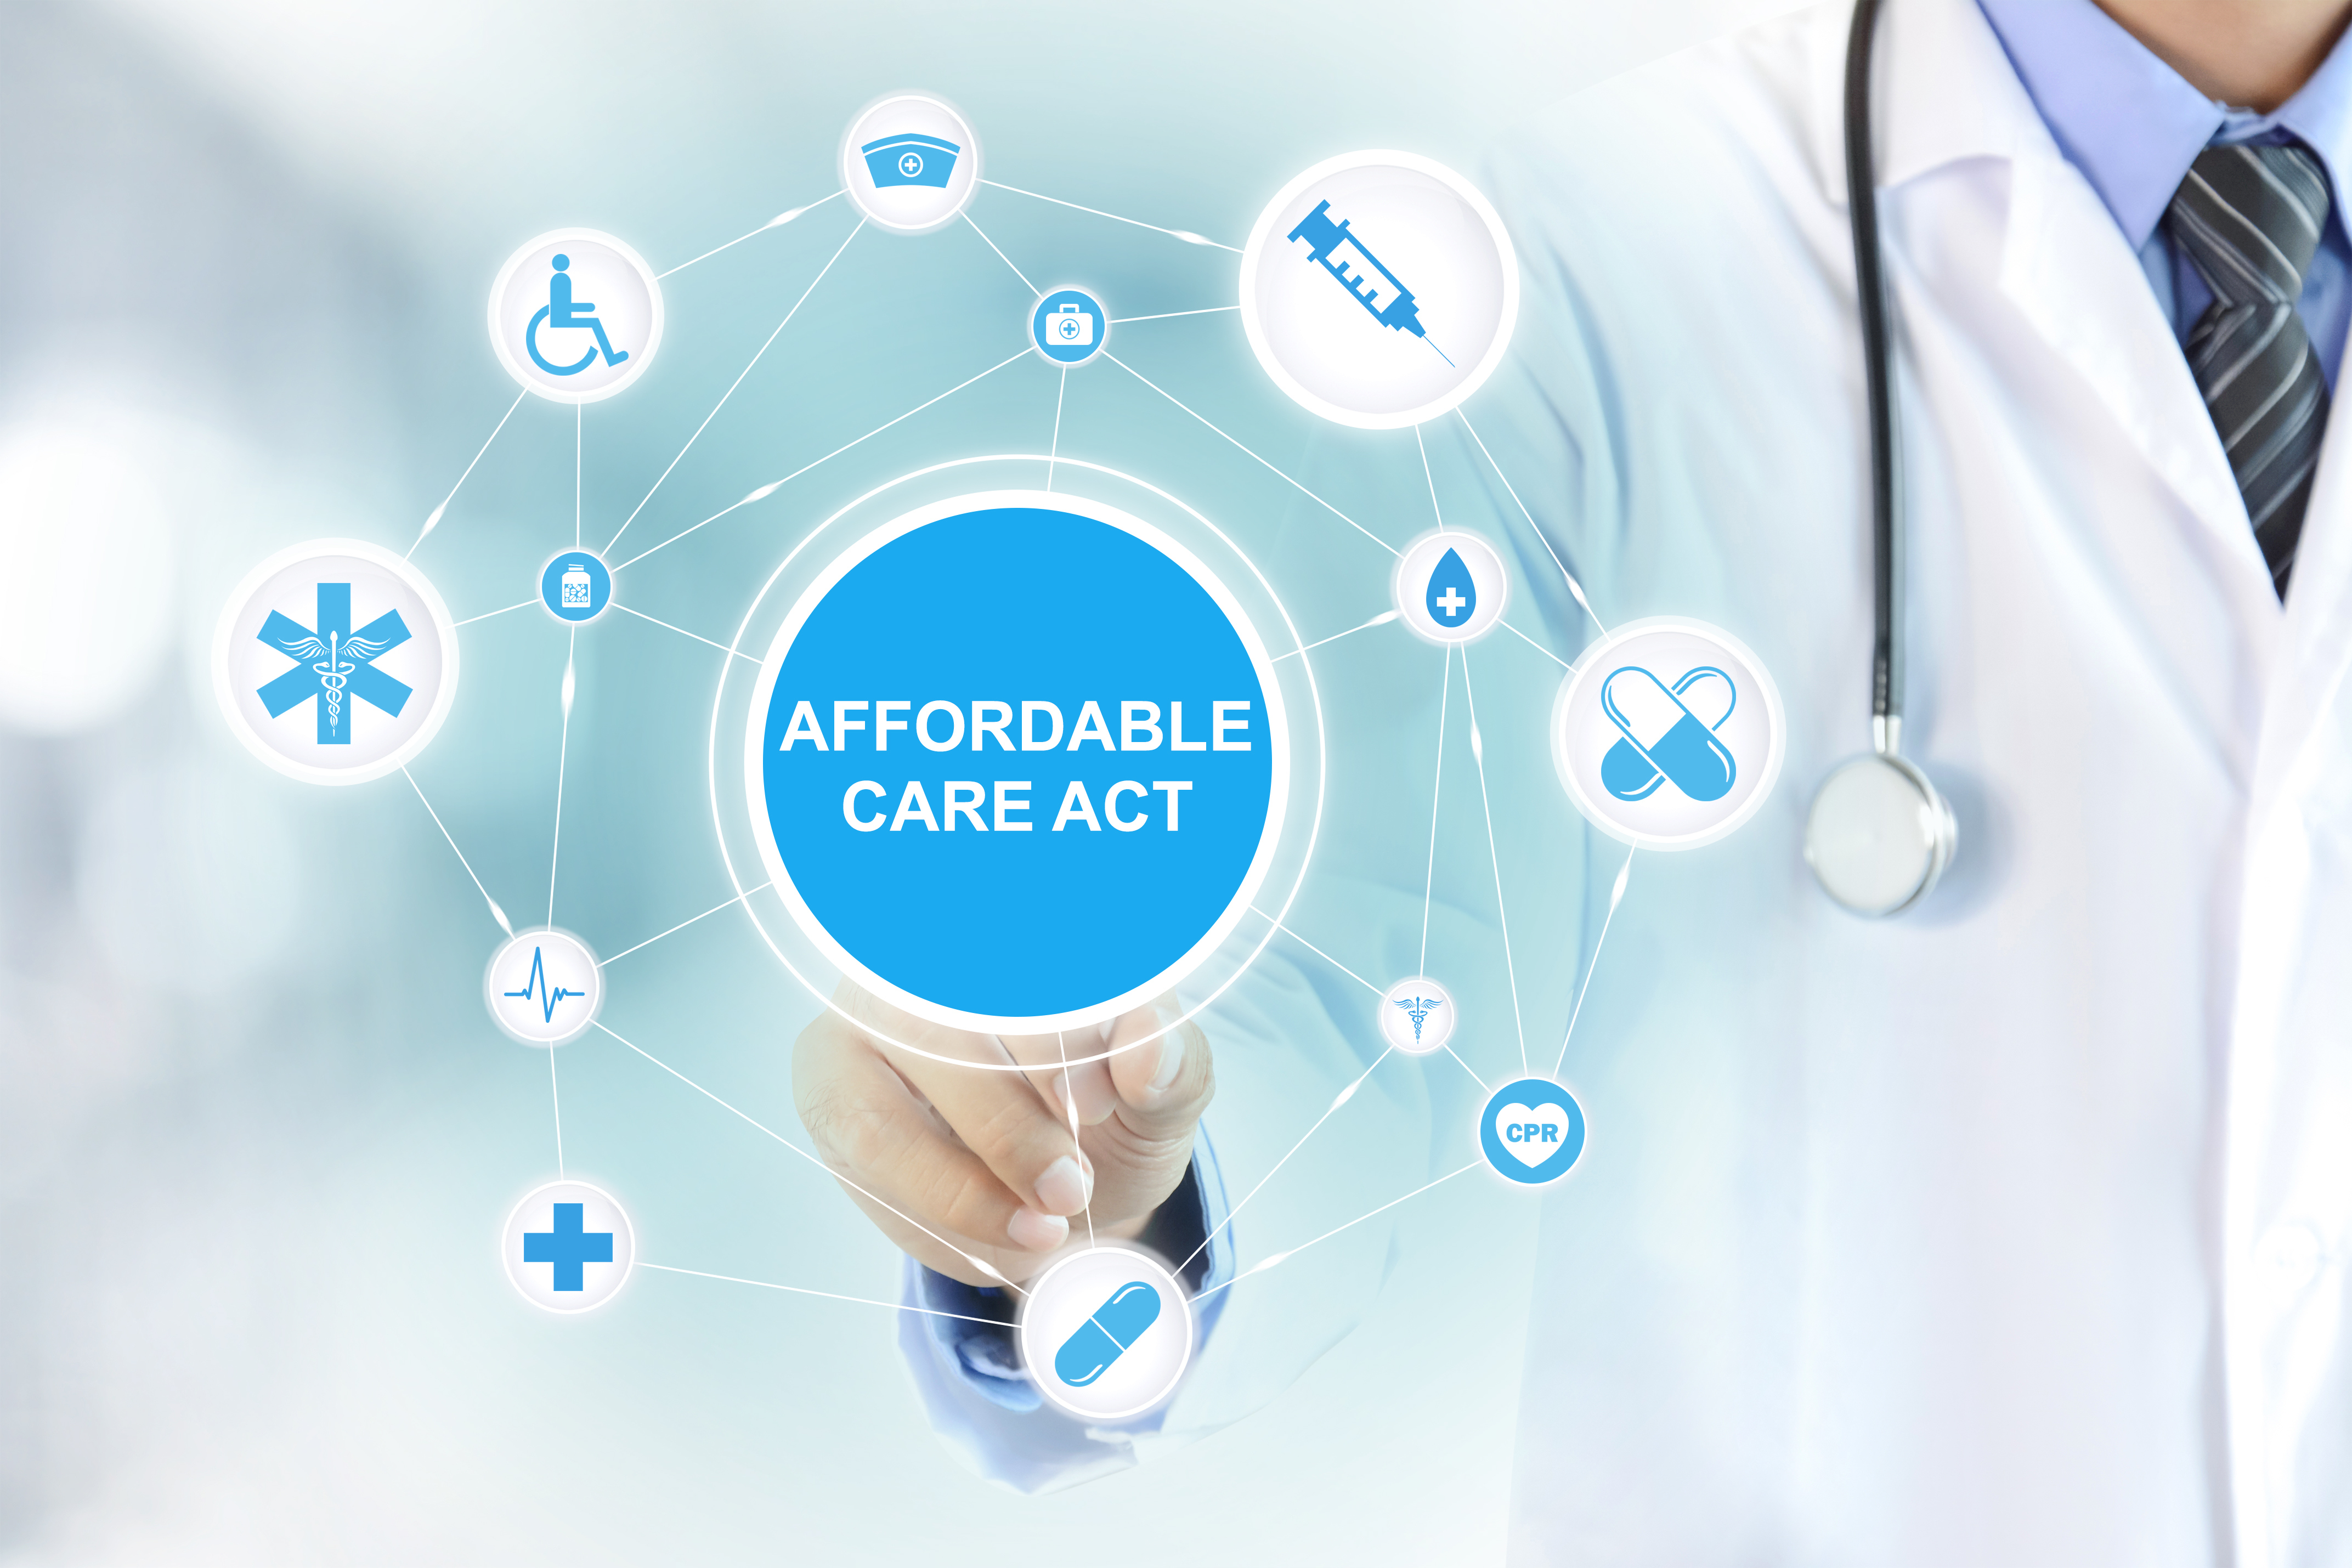 How To Choose An Affordable Health Insurance For Your Family